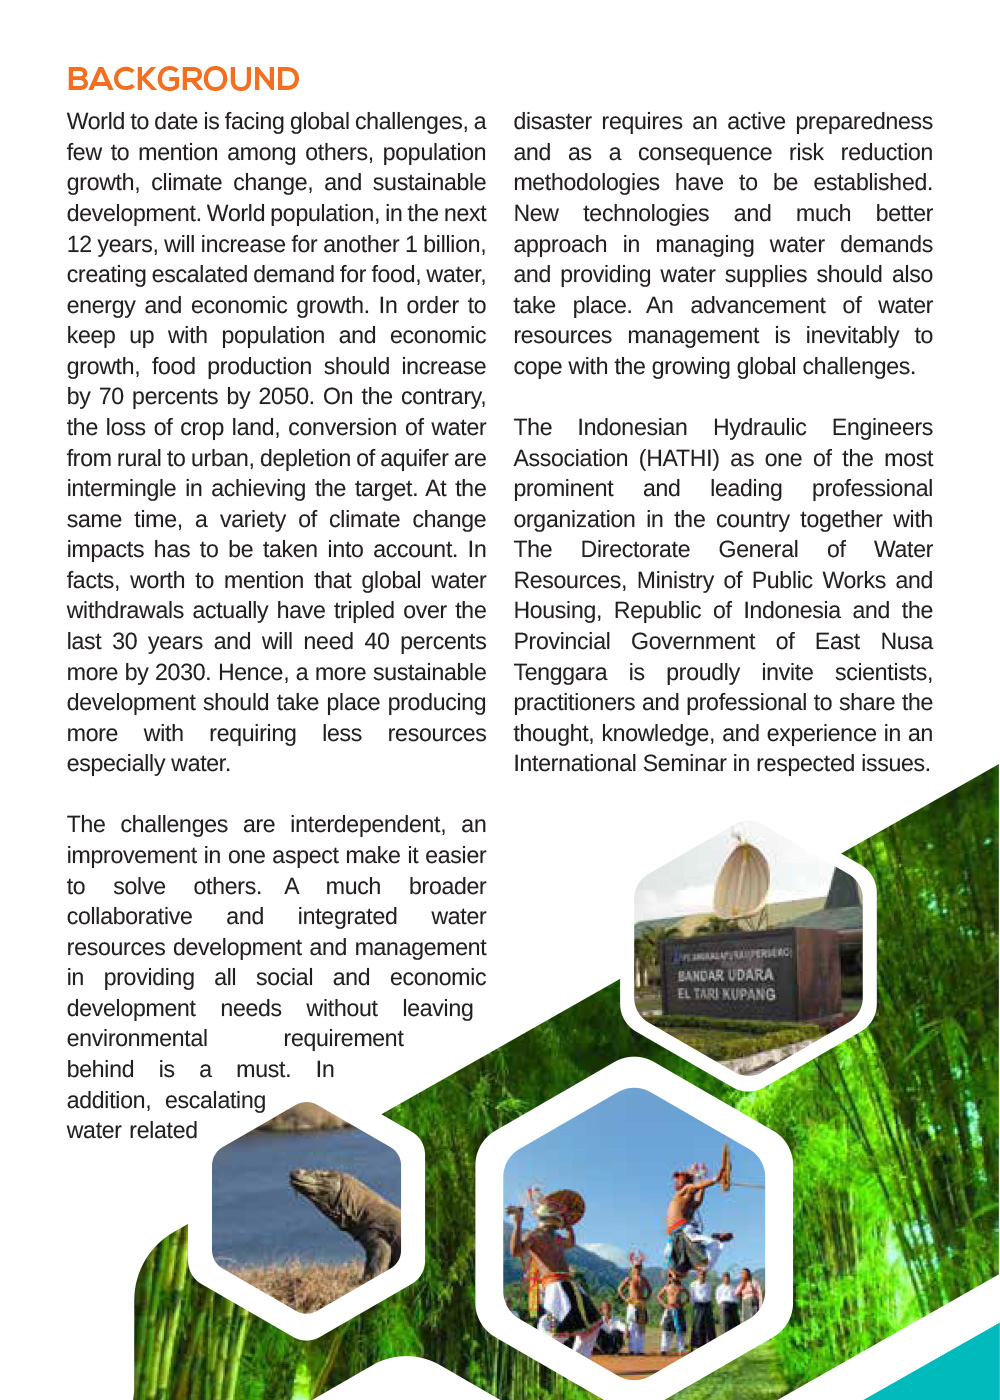 The 6th International Seminar - Coming events - ICFM